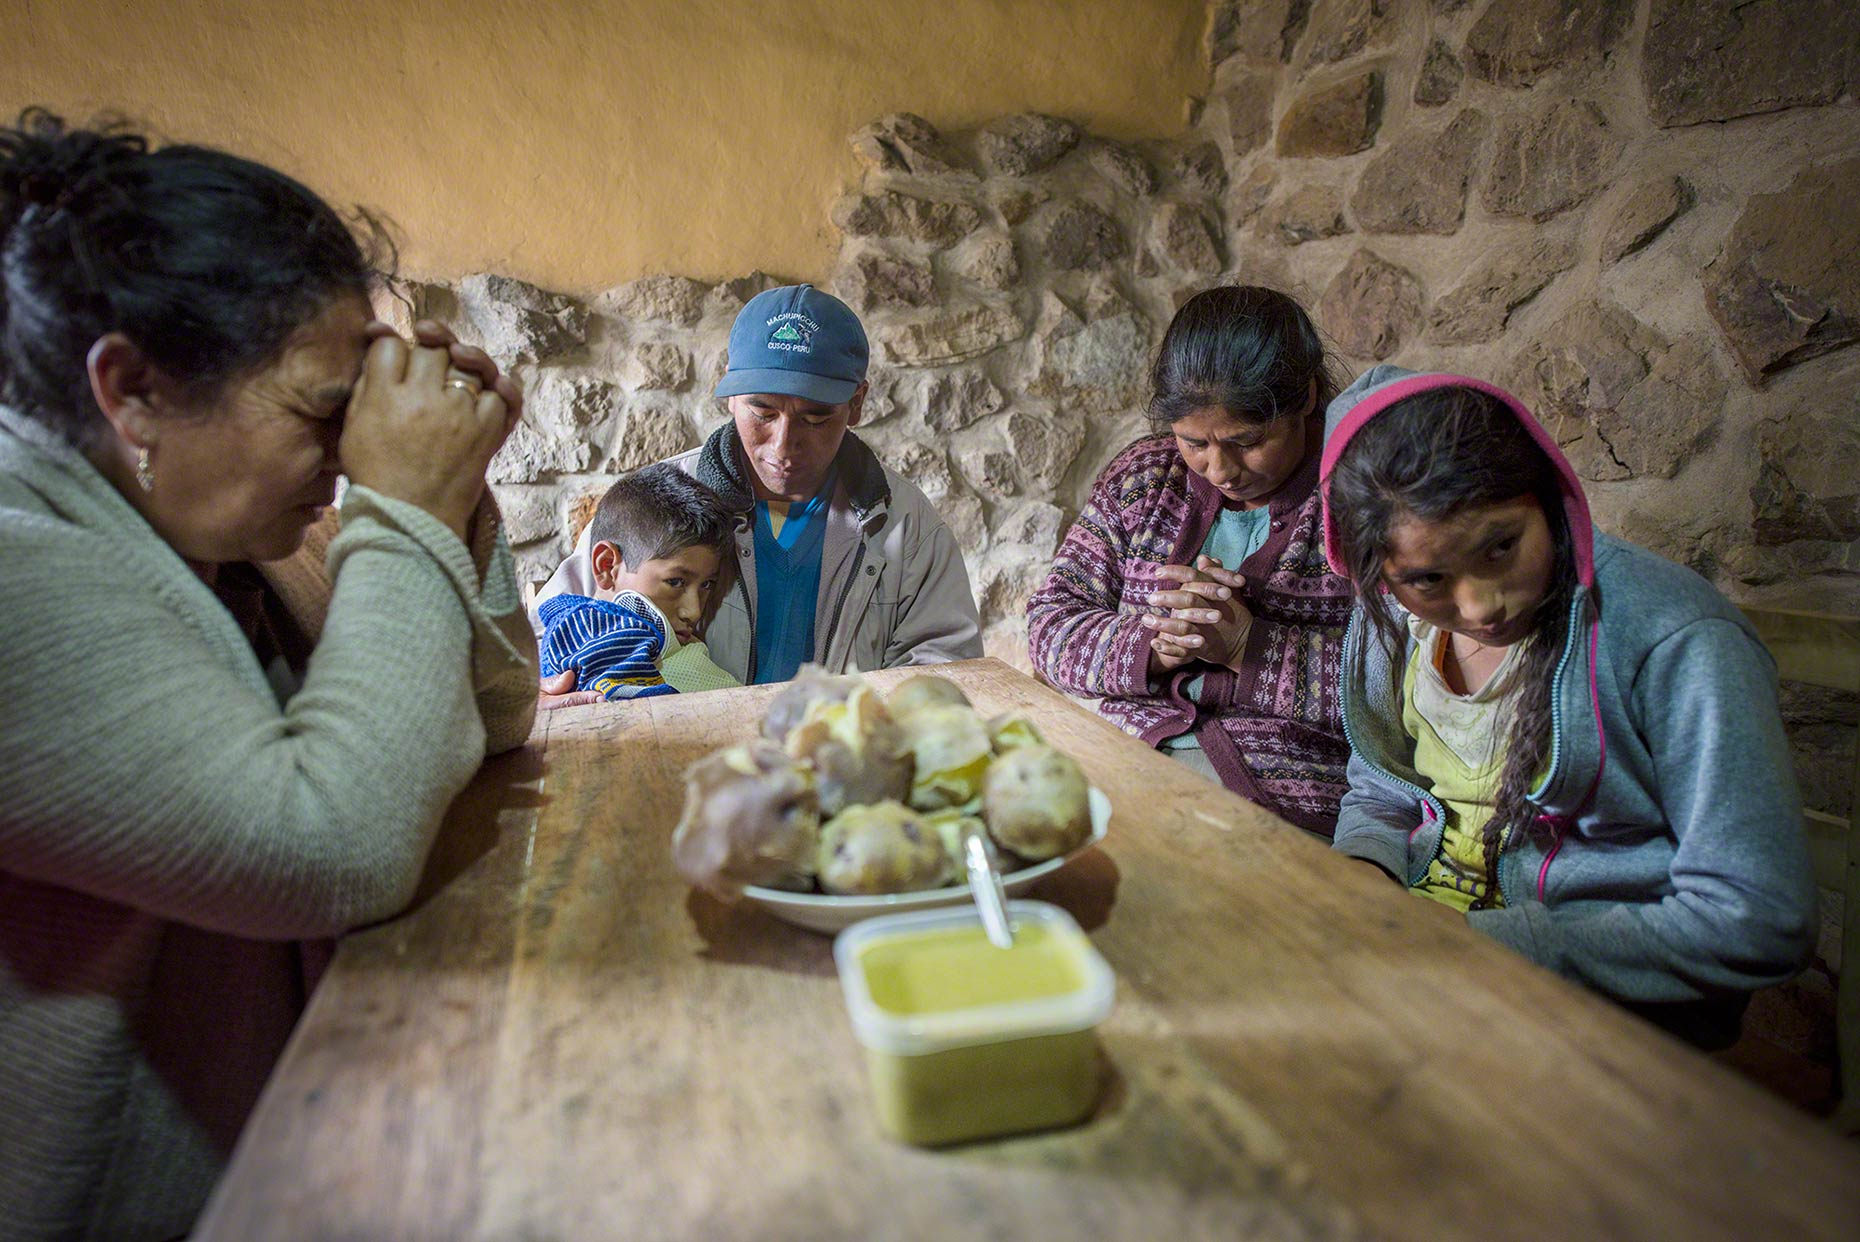 Gracias a papas